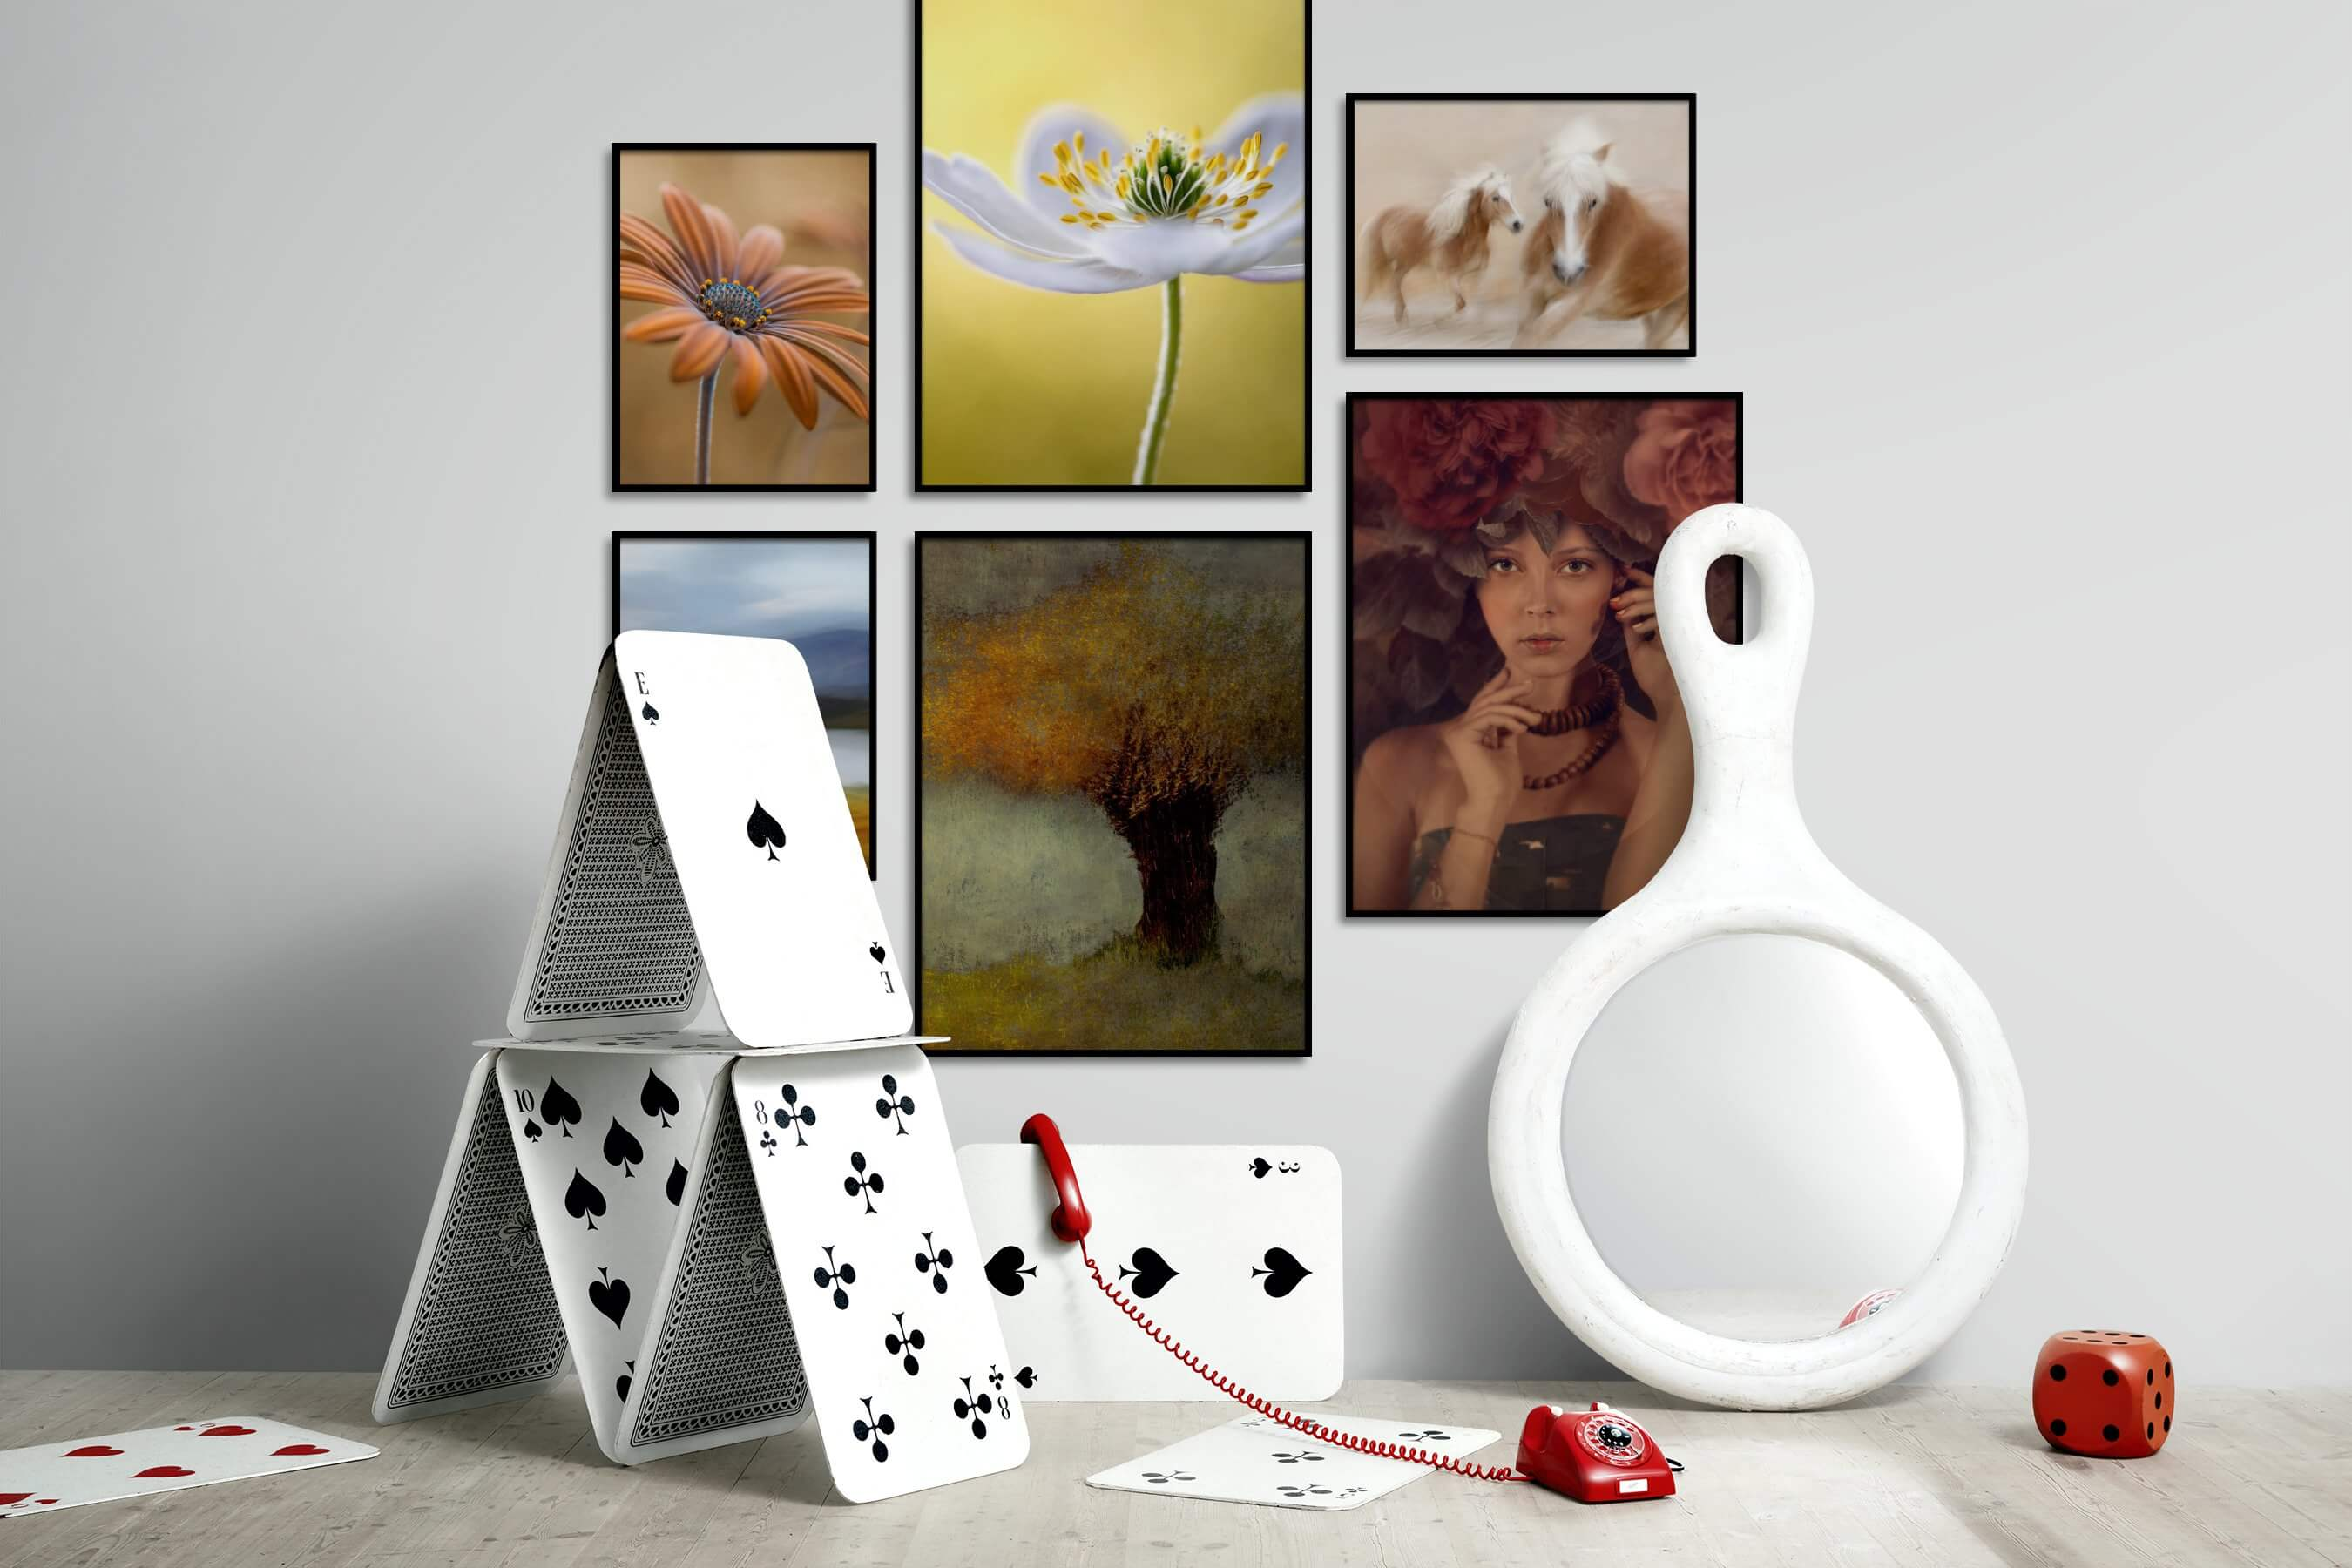 Gallery wall idea with six framed pictures arranged on a wall depicting Flowers & Plants, For the Minimalist, Nature, Animals, Country Life, and Fashion & Beauty